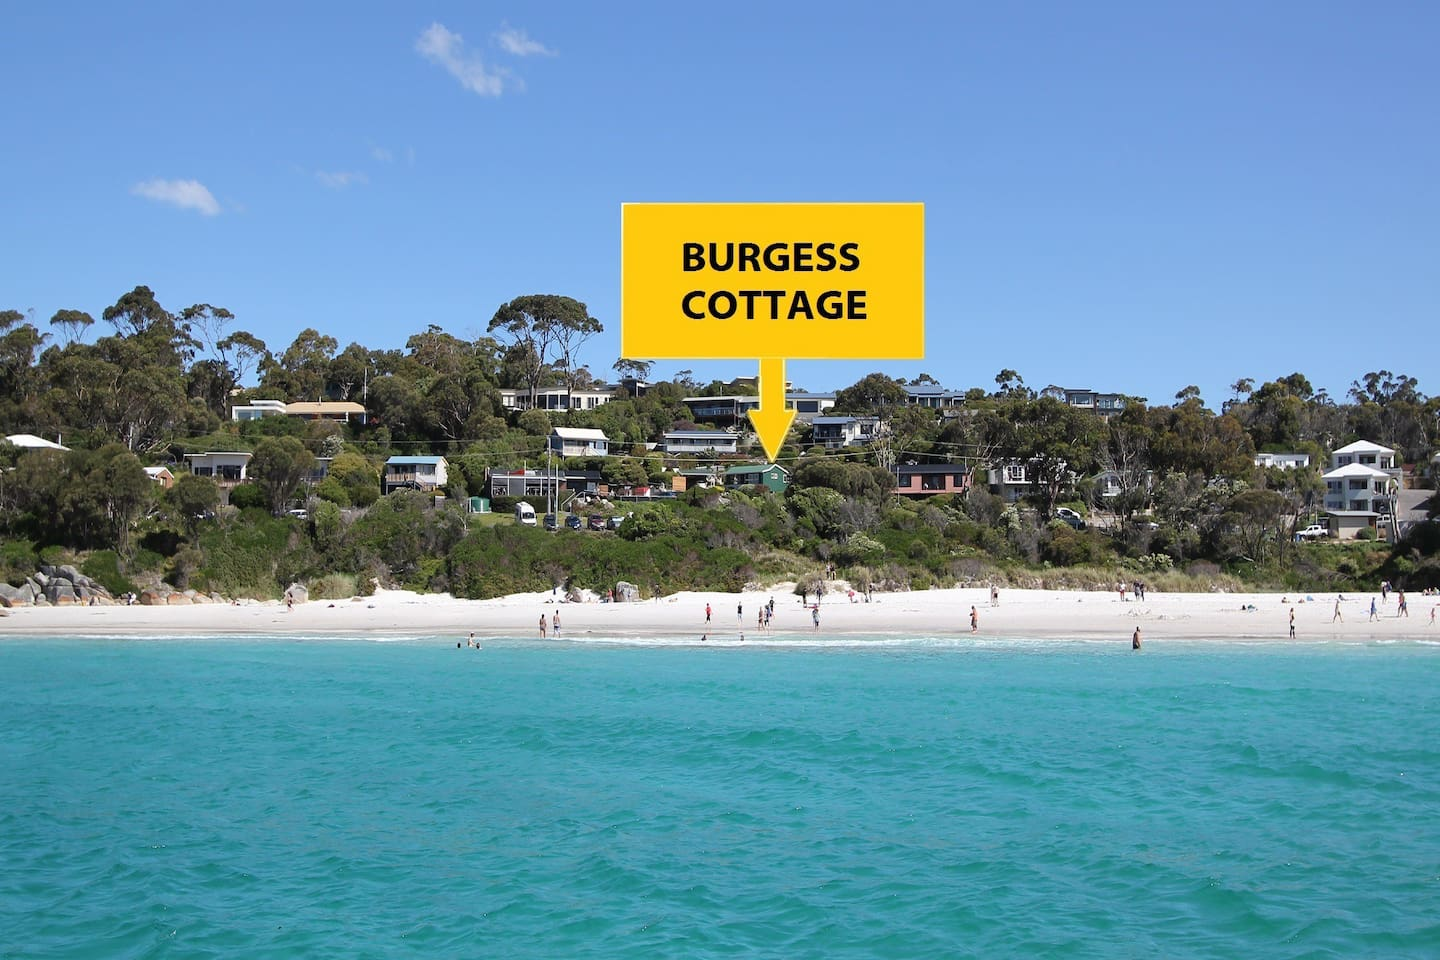 Burgess Cottage from the water